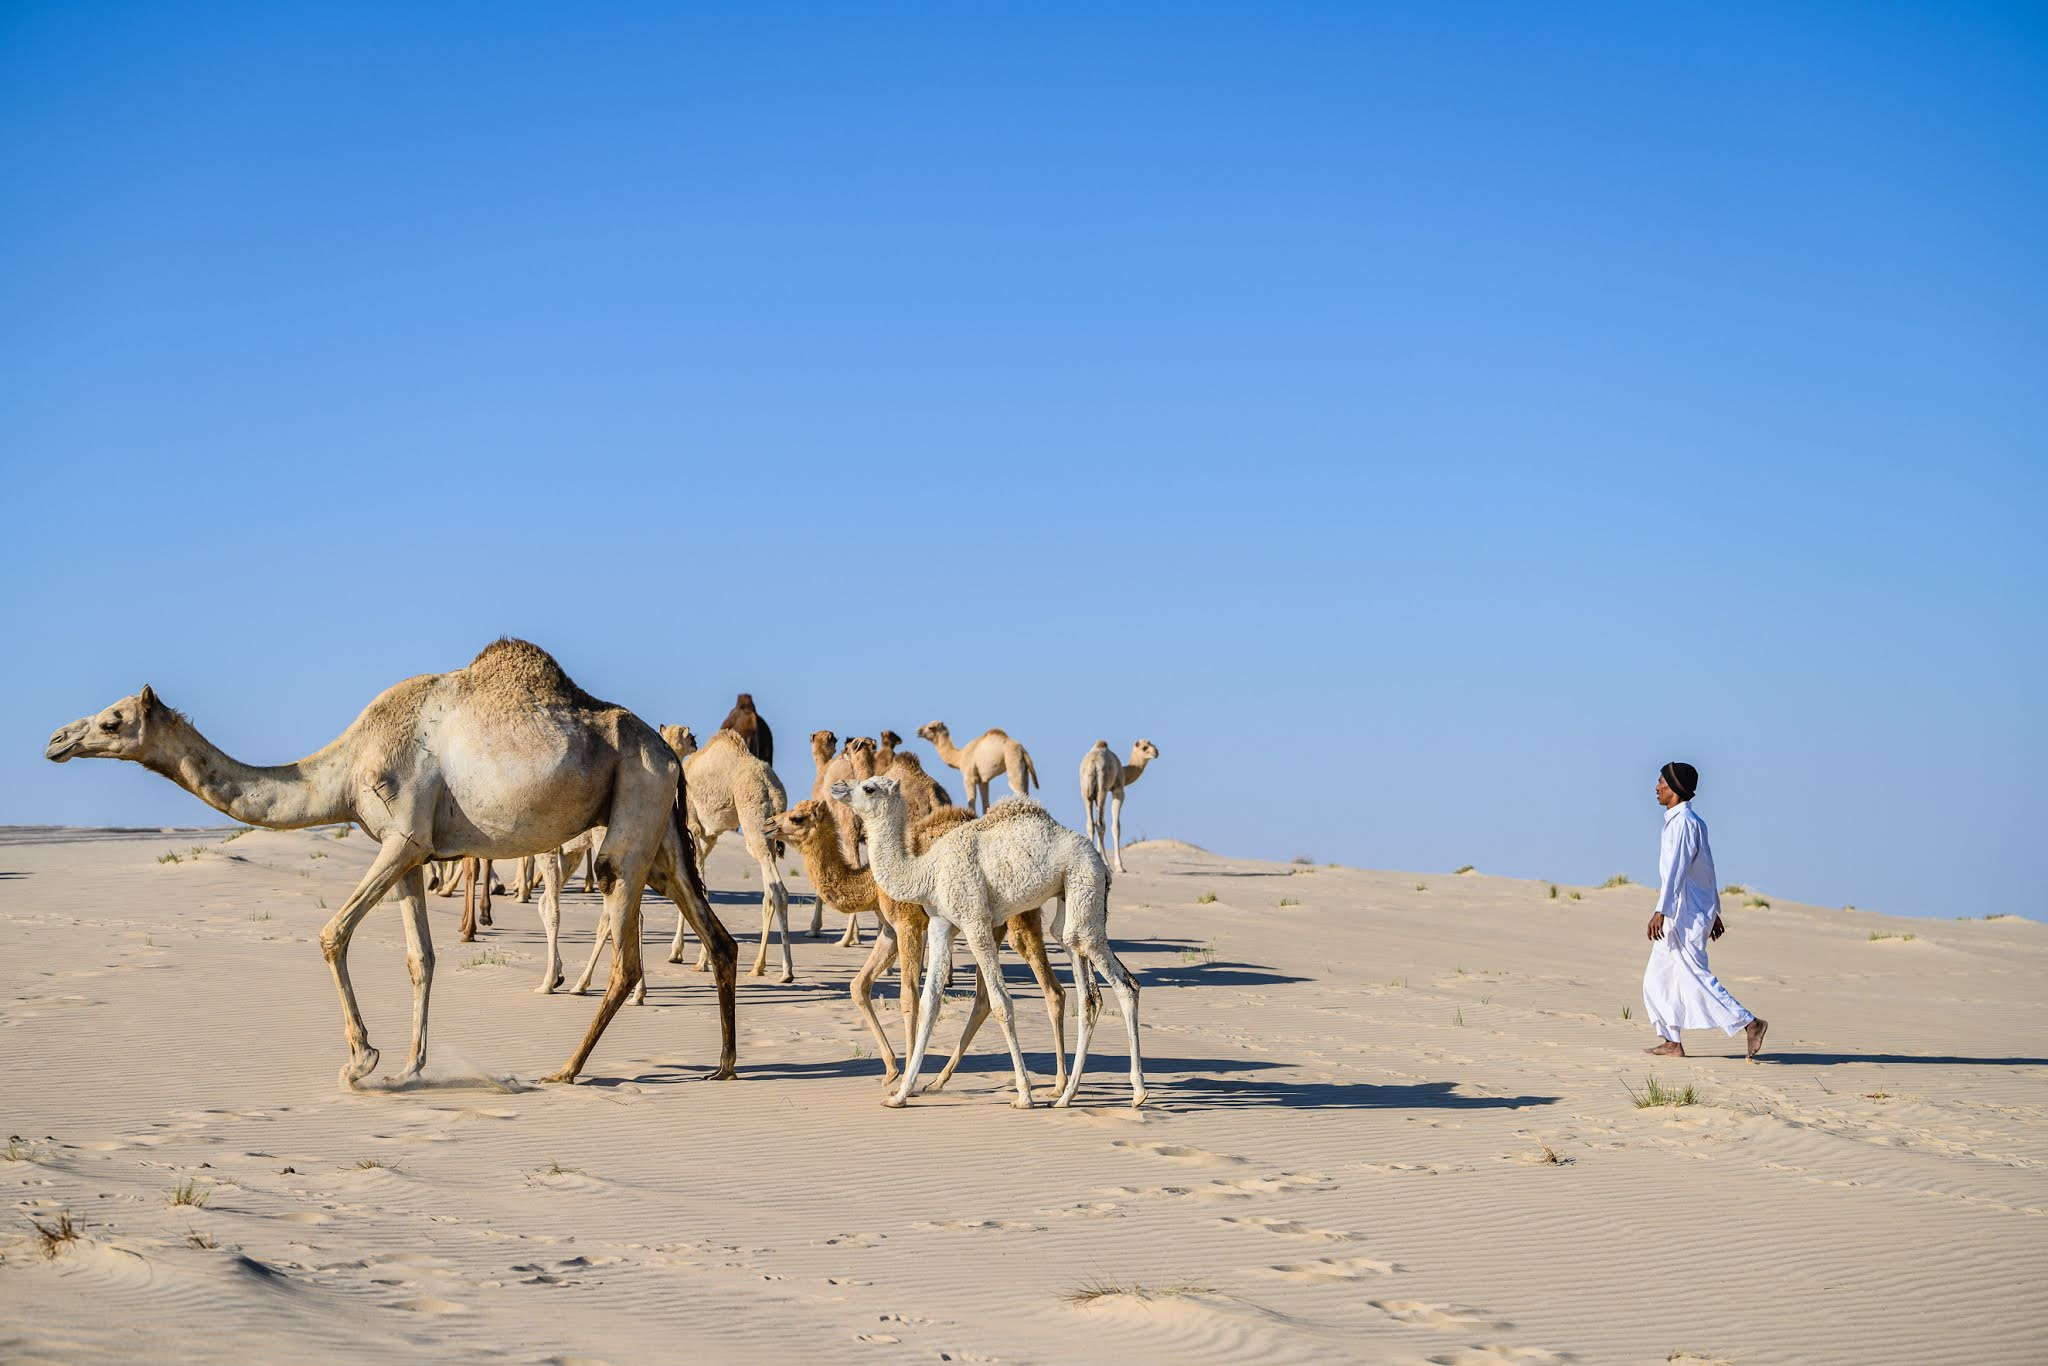 Qatar tourism releases images of camel calving season